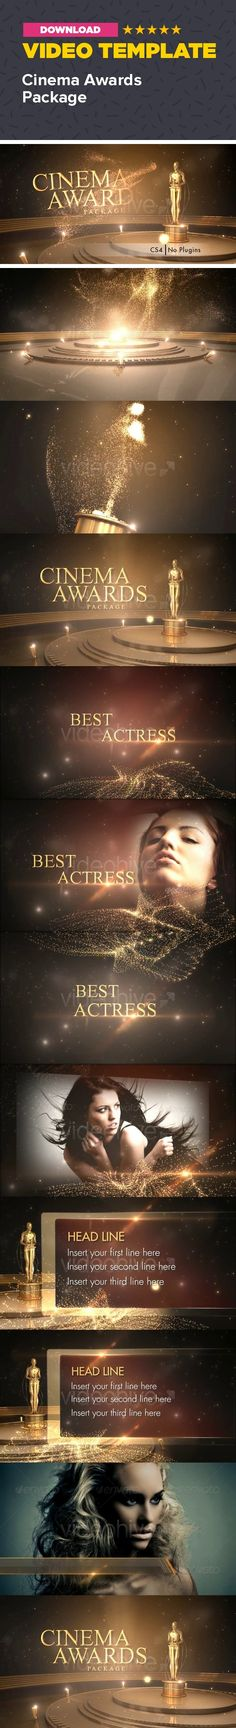 academy, anniversary, awards function, best actor, form, gold, holly wood, hollywood, movie, oscar, Oscar awards, particles, shield, trapcode, trophy IN this project total included elements   1) Show opener 2) Best Actor (3 Differant Styles) 3) Visual Box 4) Bug 5) Name Slug 6) Text Area  for audio http://audiojungle.net/item/fanfare-and-theme-for-sporting-heroes/2715907?sso Check Out My Special Projects